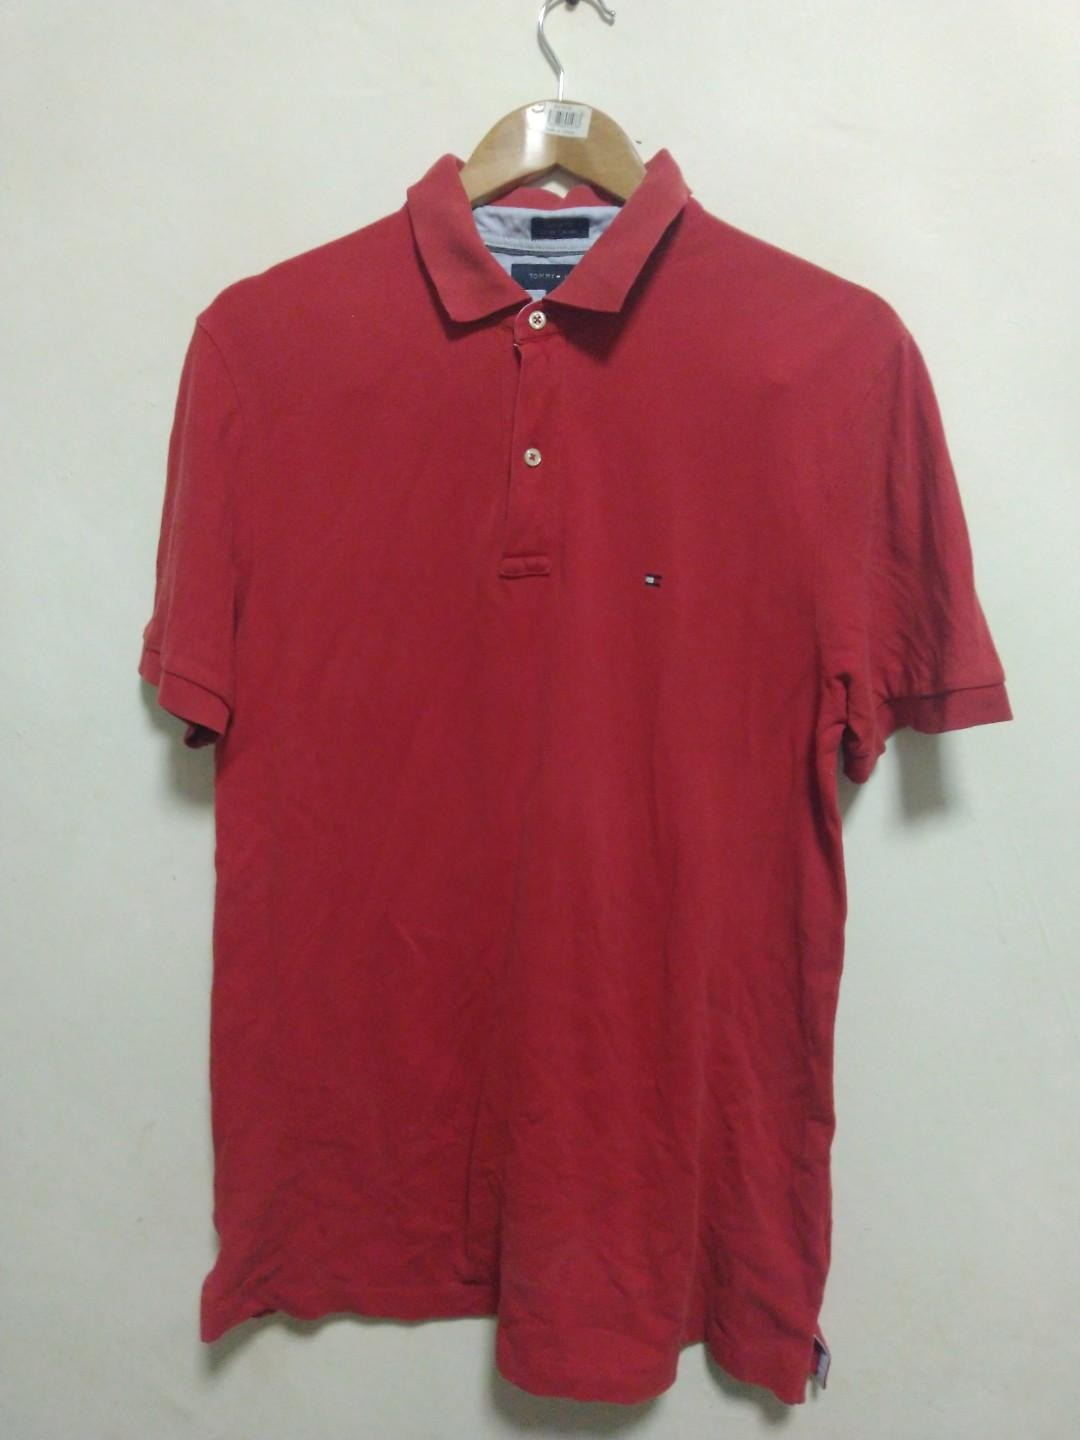 98fd9d7387d4 Polo Tommy Hilfiger Original, Men's Fashion, Men's Clothes, Tops on ...